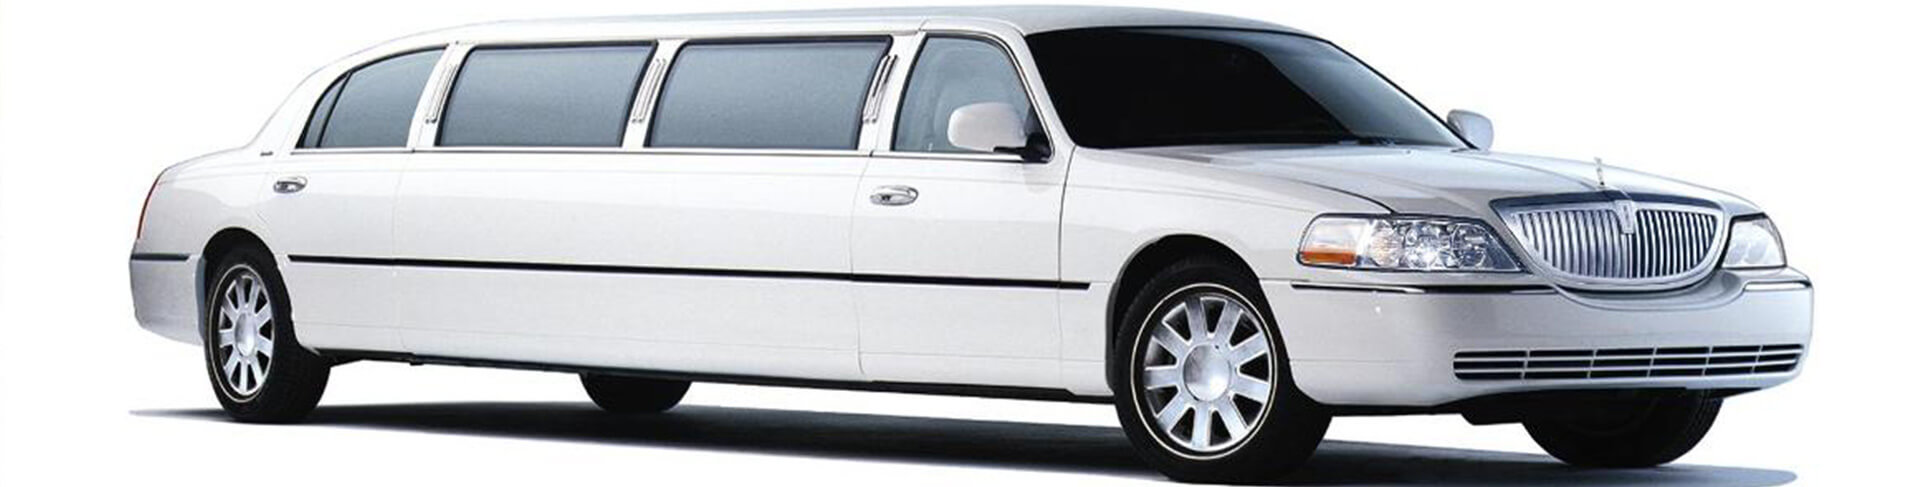 Luxurious Cars Rent